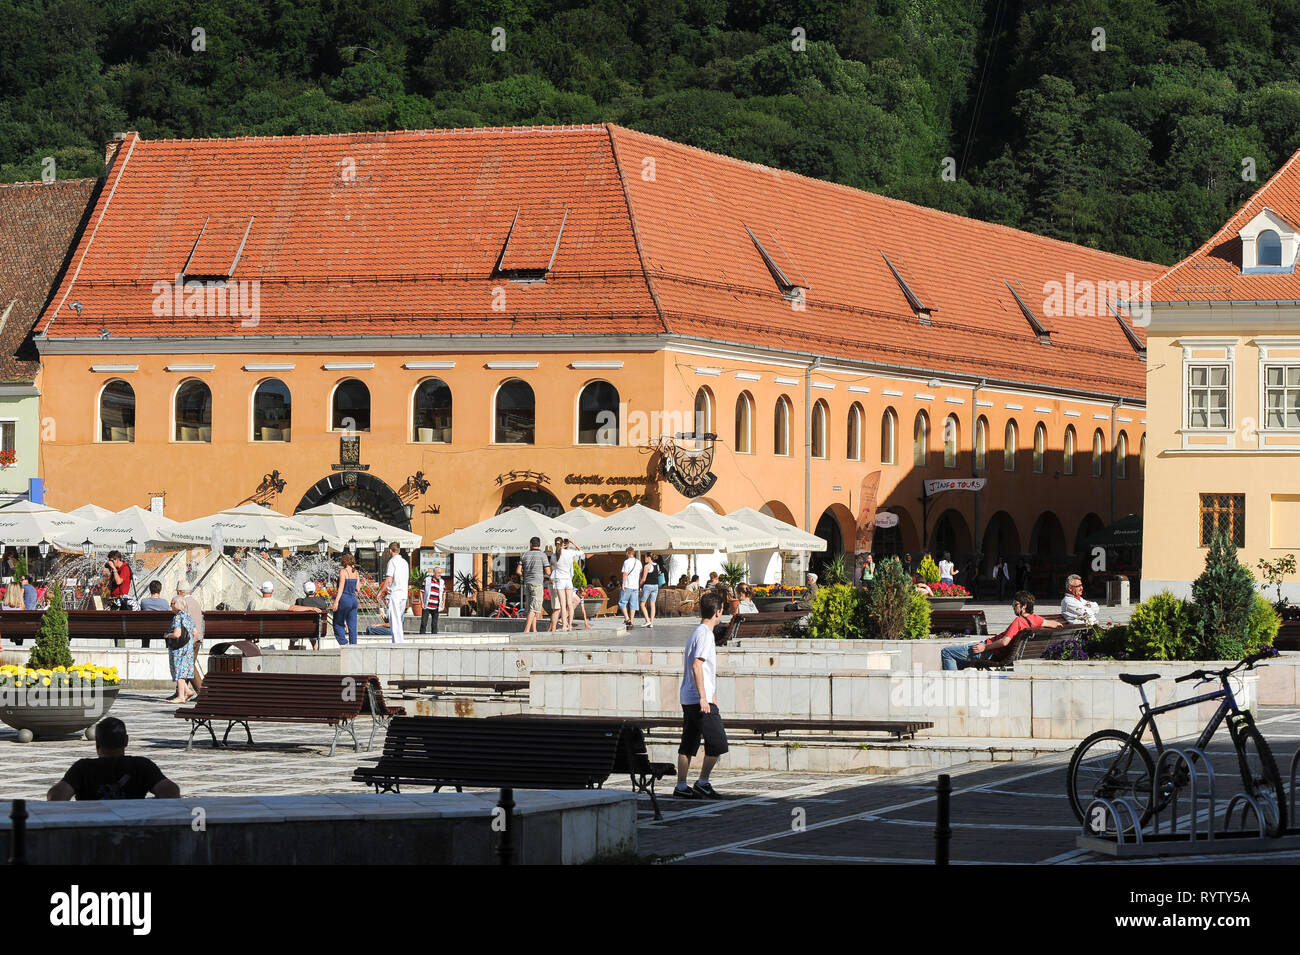 Hirscherhaus (Merchants House) built 1541 1547 on Piata Sfetulei (Council Square) in Brasov, Romania. July 20th 2009 © Wojciech Strozyk / Alamy Stock  - Stock Image